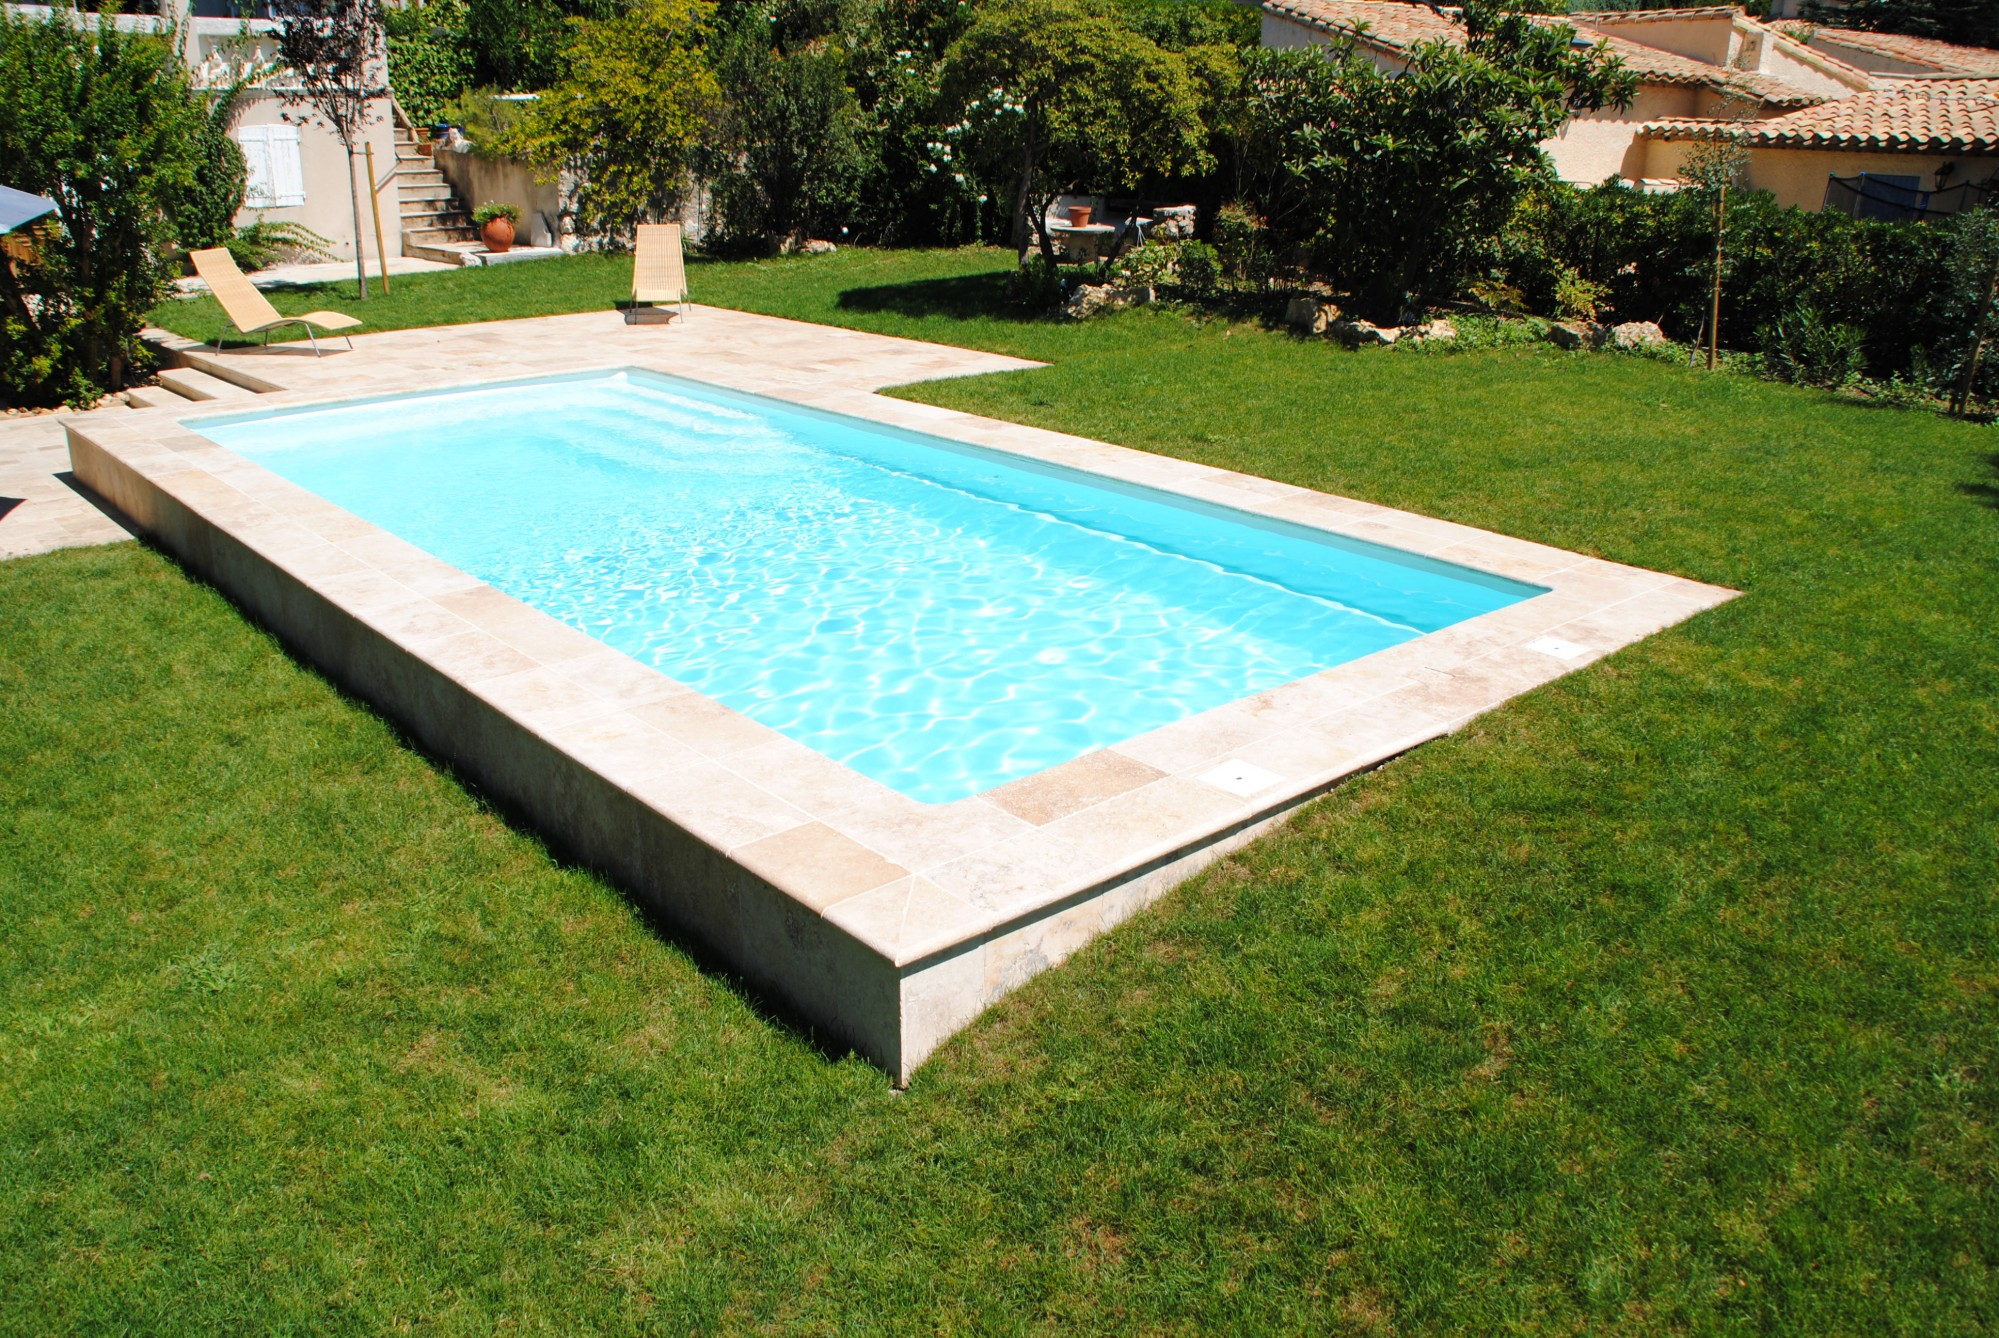 Piscines coque polyester pas chere piscine polyester for Pose piscine coque